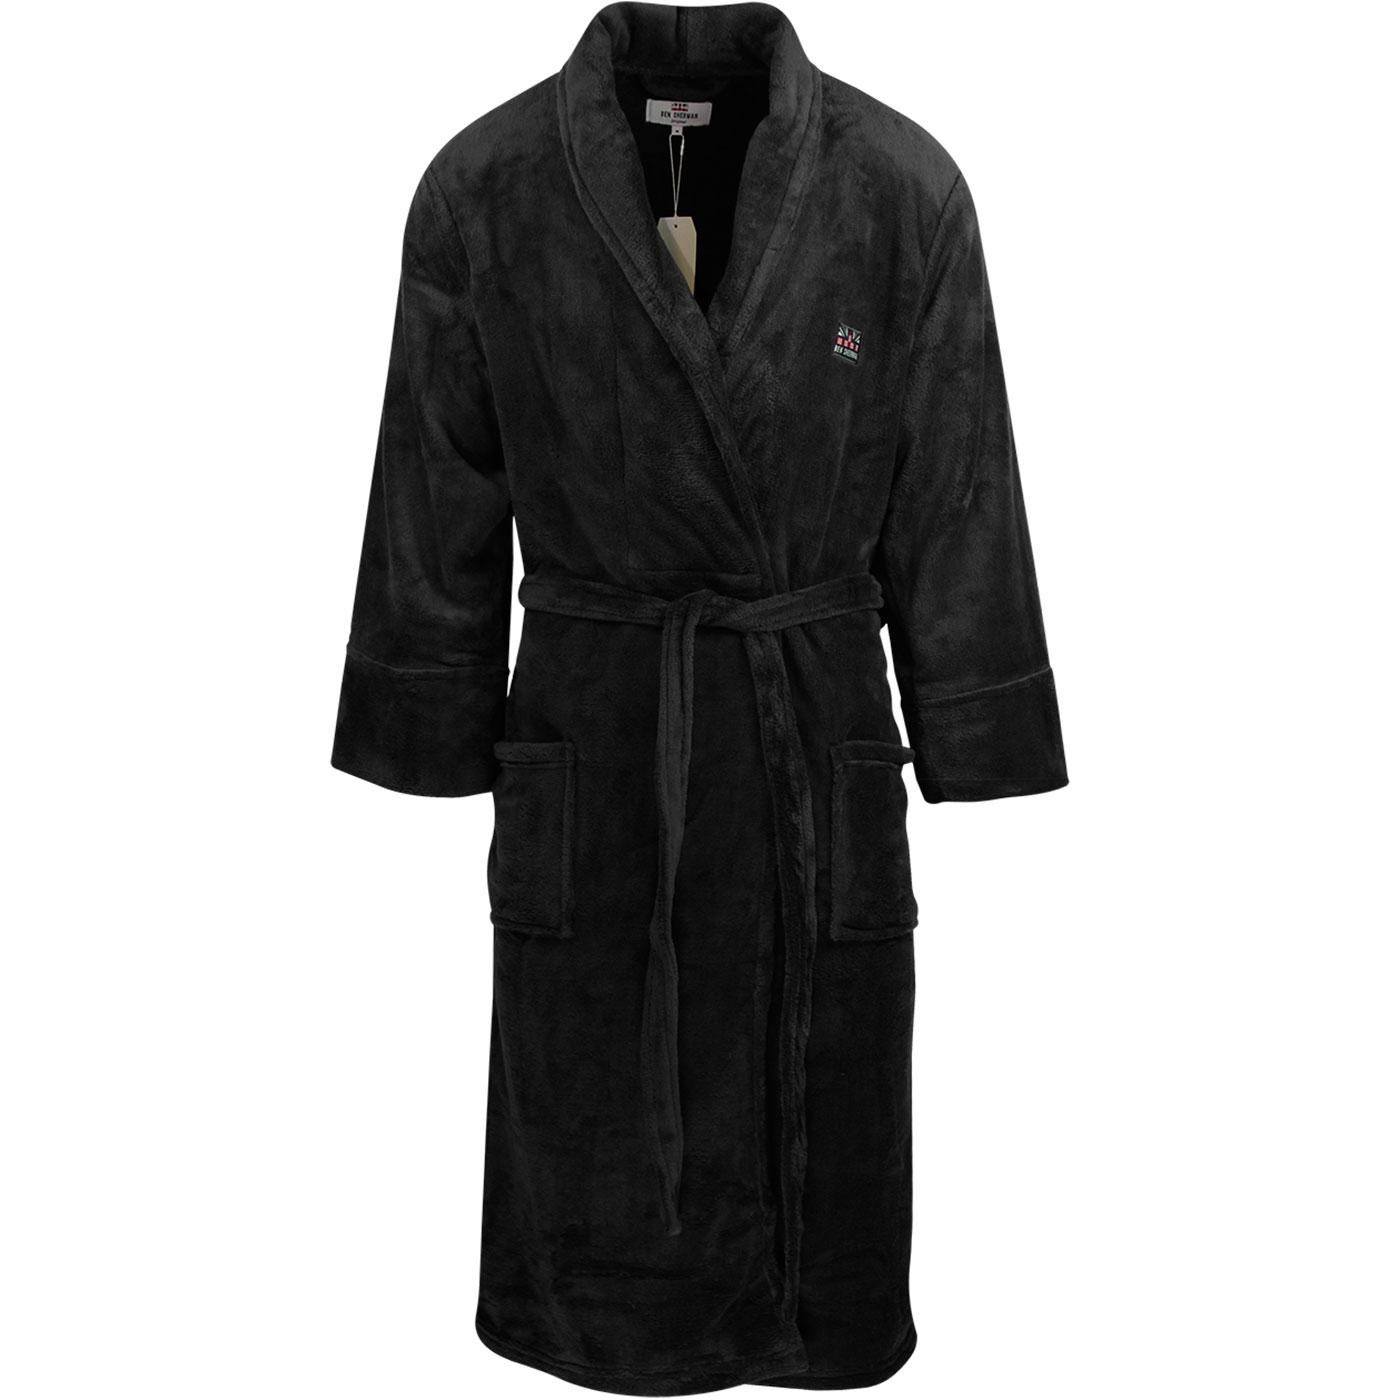 Henry BEN SHERMAN Men's Retro Bath Robe (Black)